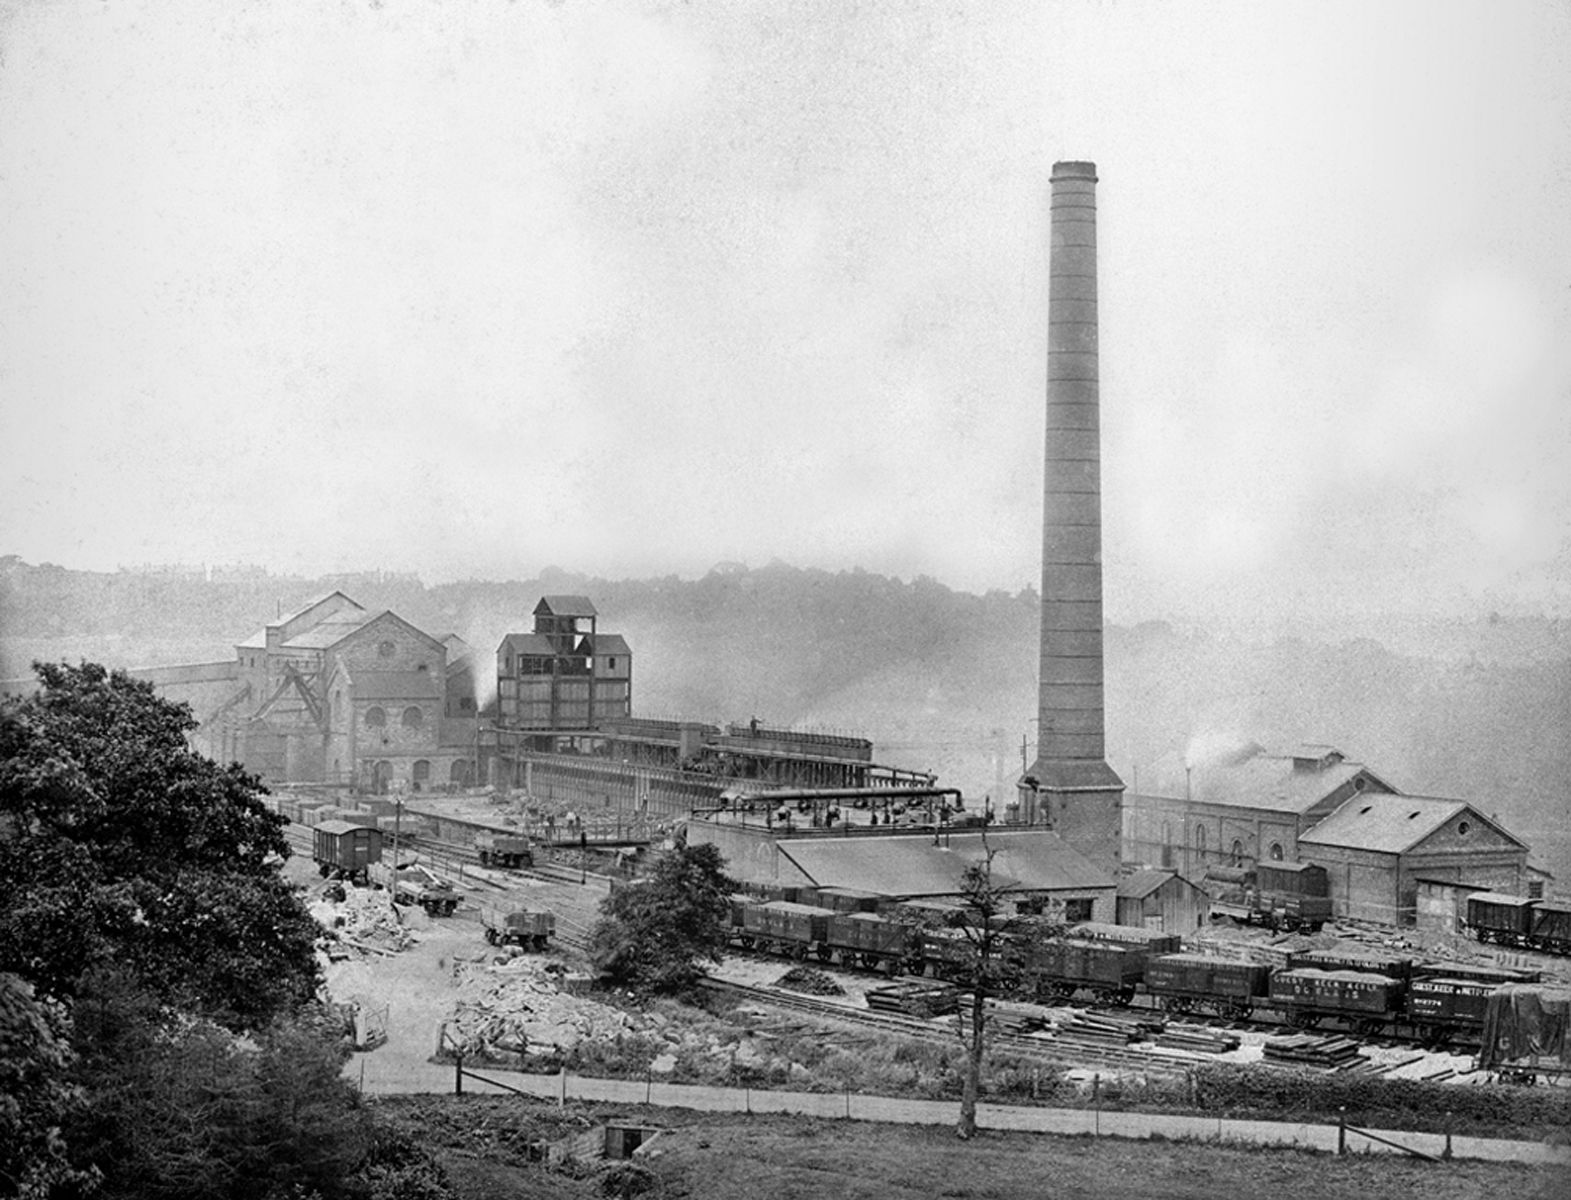 Ebbw Vale steelworks (b/w photo)